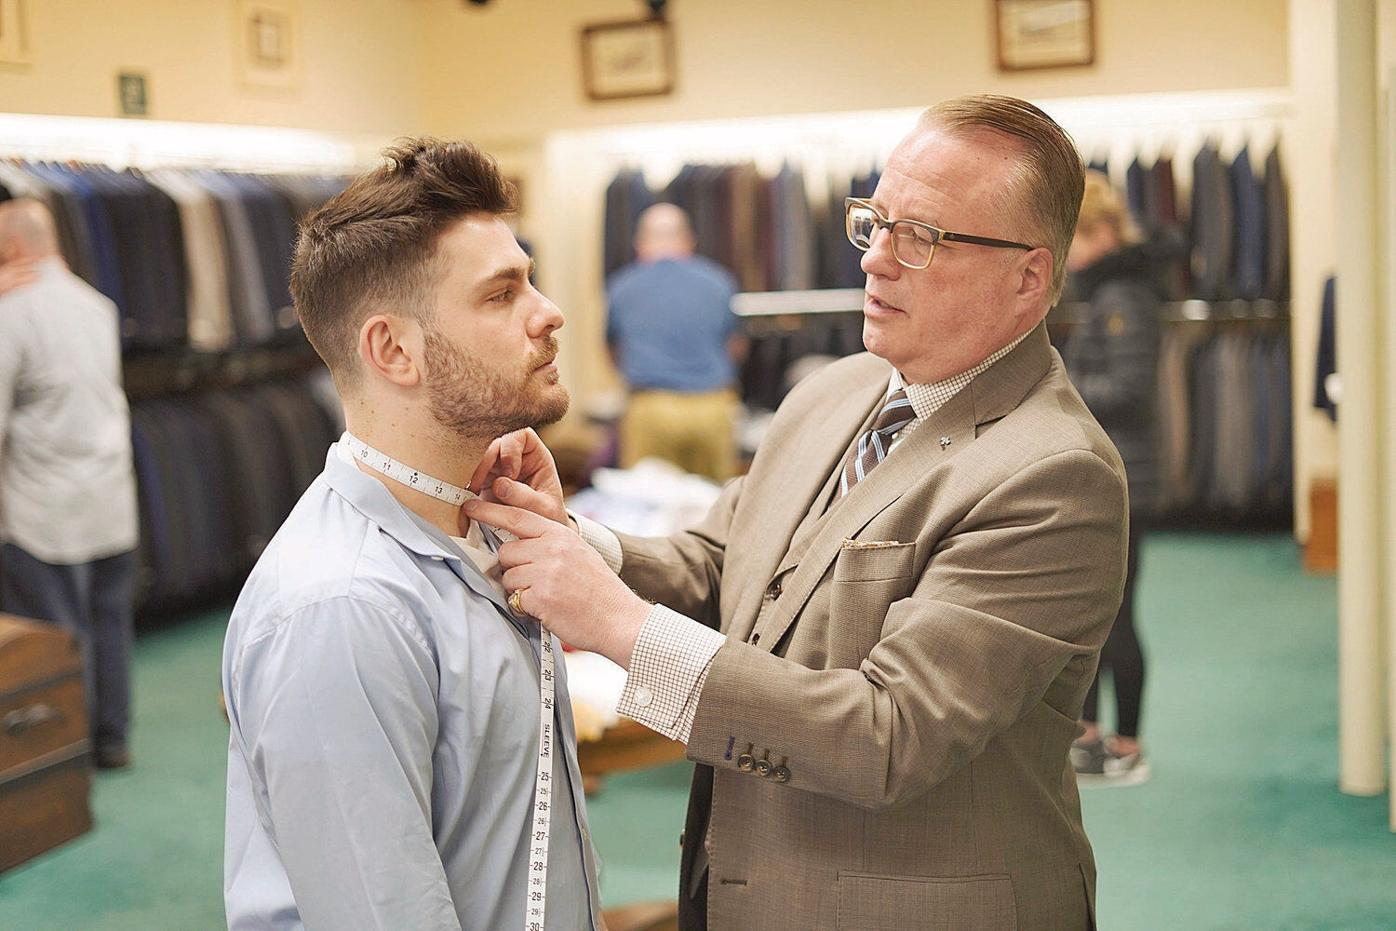 North St. clothing store tries on a new trend: Custom-made dress shirts